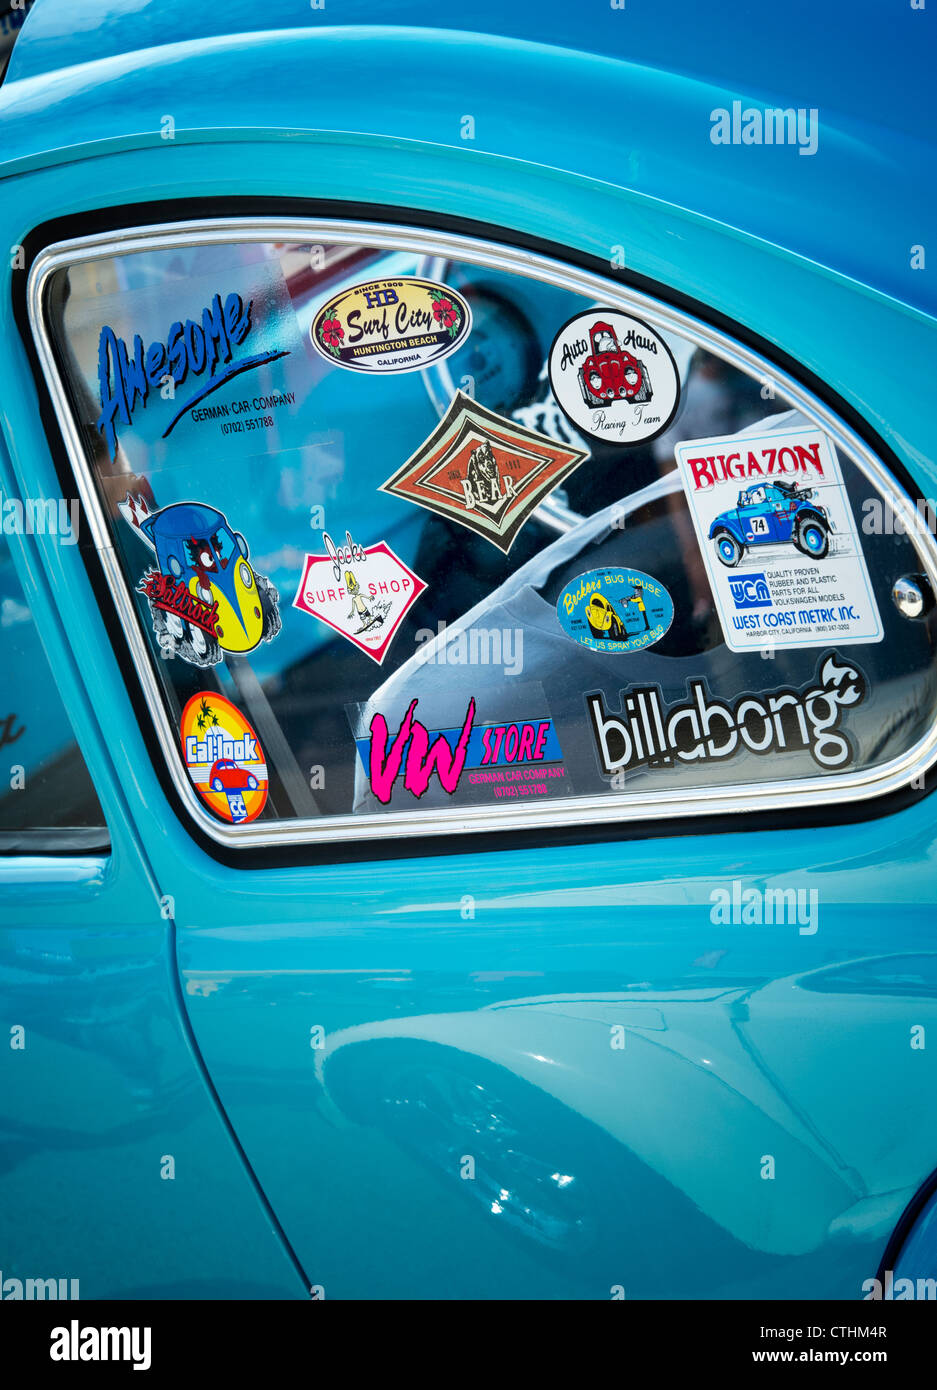 Surfing life style window stickers on an old vw beetle car stock image